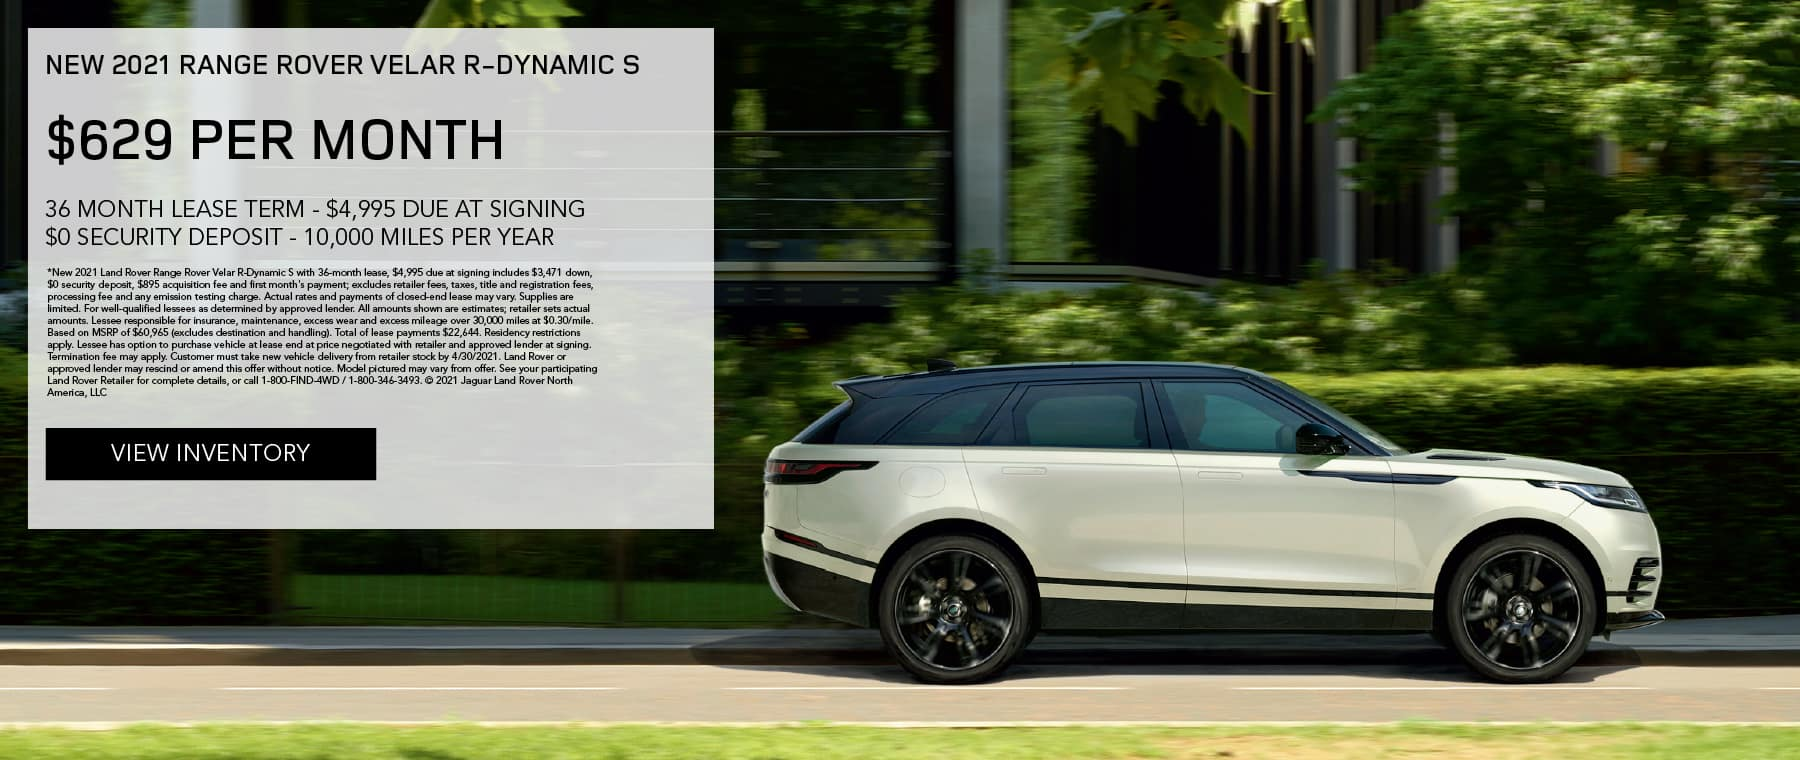 NEW 2021 RANGE ROVER VELAR R-DYNAMIC S. $629 PER MONTH. 36 MONTH LEASE TERM. $4,995 CASH DUE AT SIGNING. $0 SECURITY DEPOSIT. 10,000 MILES PER YEAR. EXCLUDES RETAILER FEES, TAXES, TITLE AND REGISTRATION FEES, PROCESSING FEE AND ANY EMISSION TESTING CHARGE. ENDS 4/30/2021. VIEW INVENTORY. SILVER RANGE ROVER VELAR PARKED IN CITY.